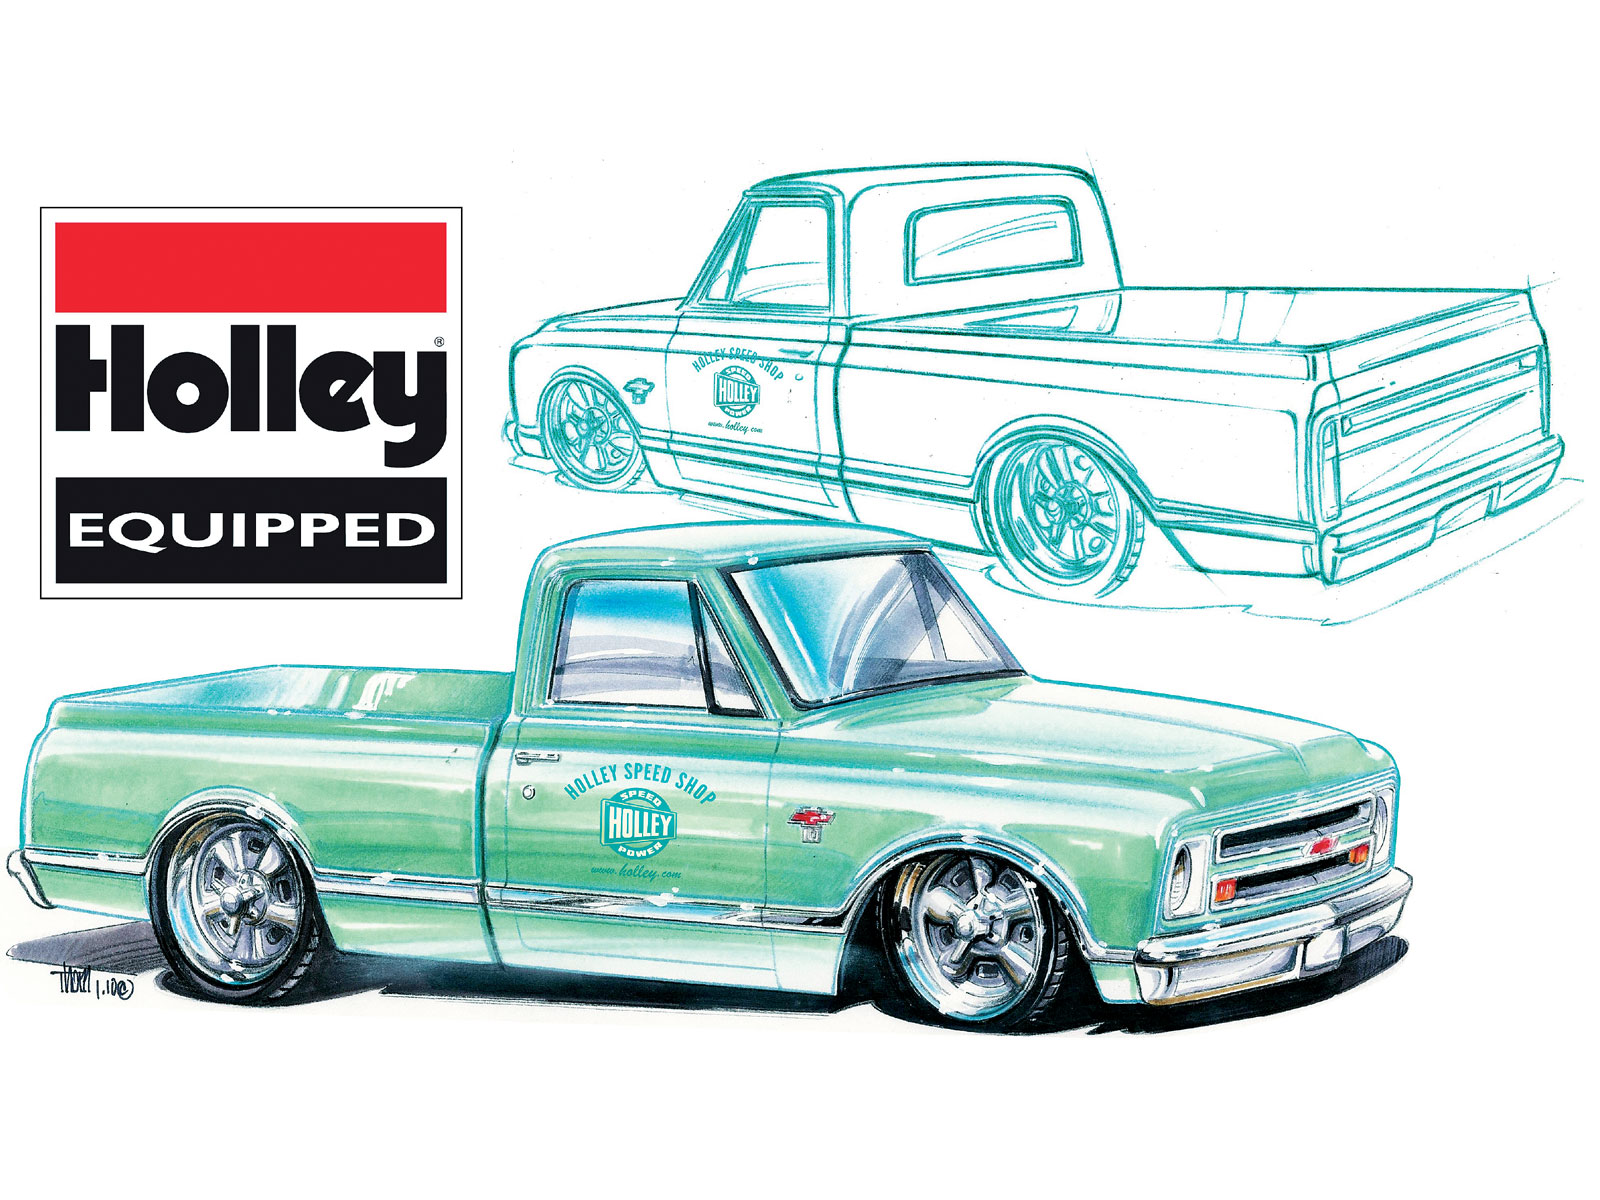 1600x1200 Cool Chevy Truck Drawings Wallpapers Background